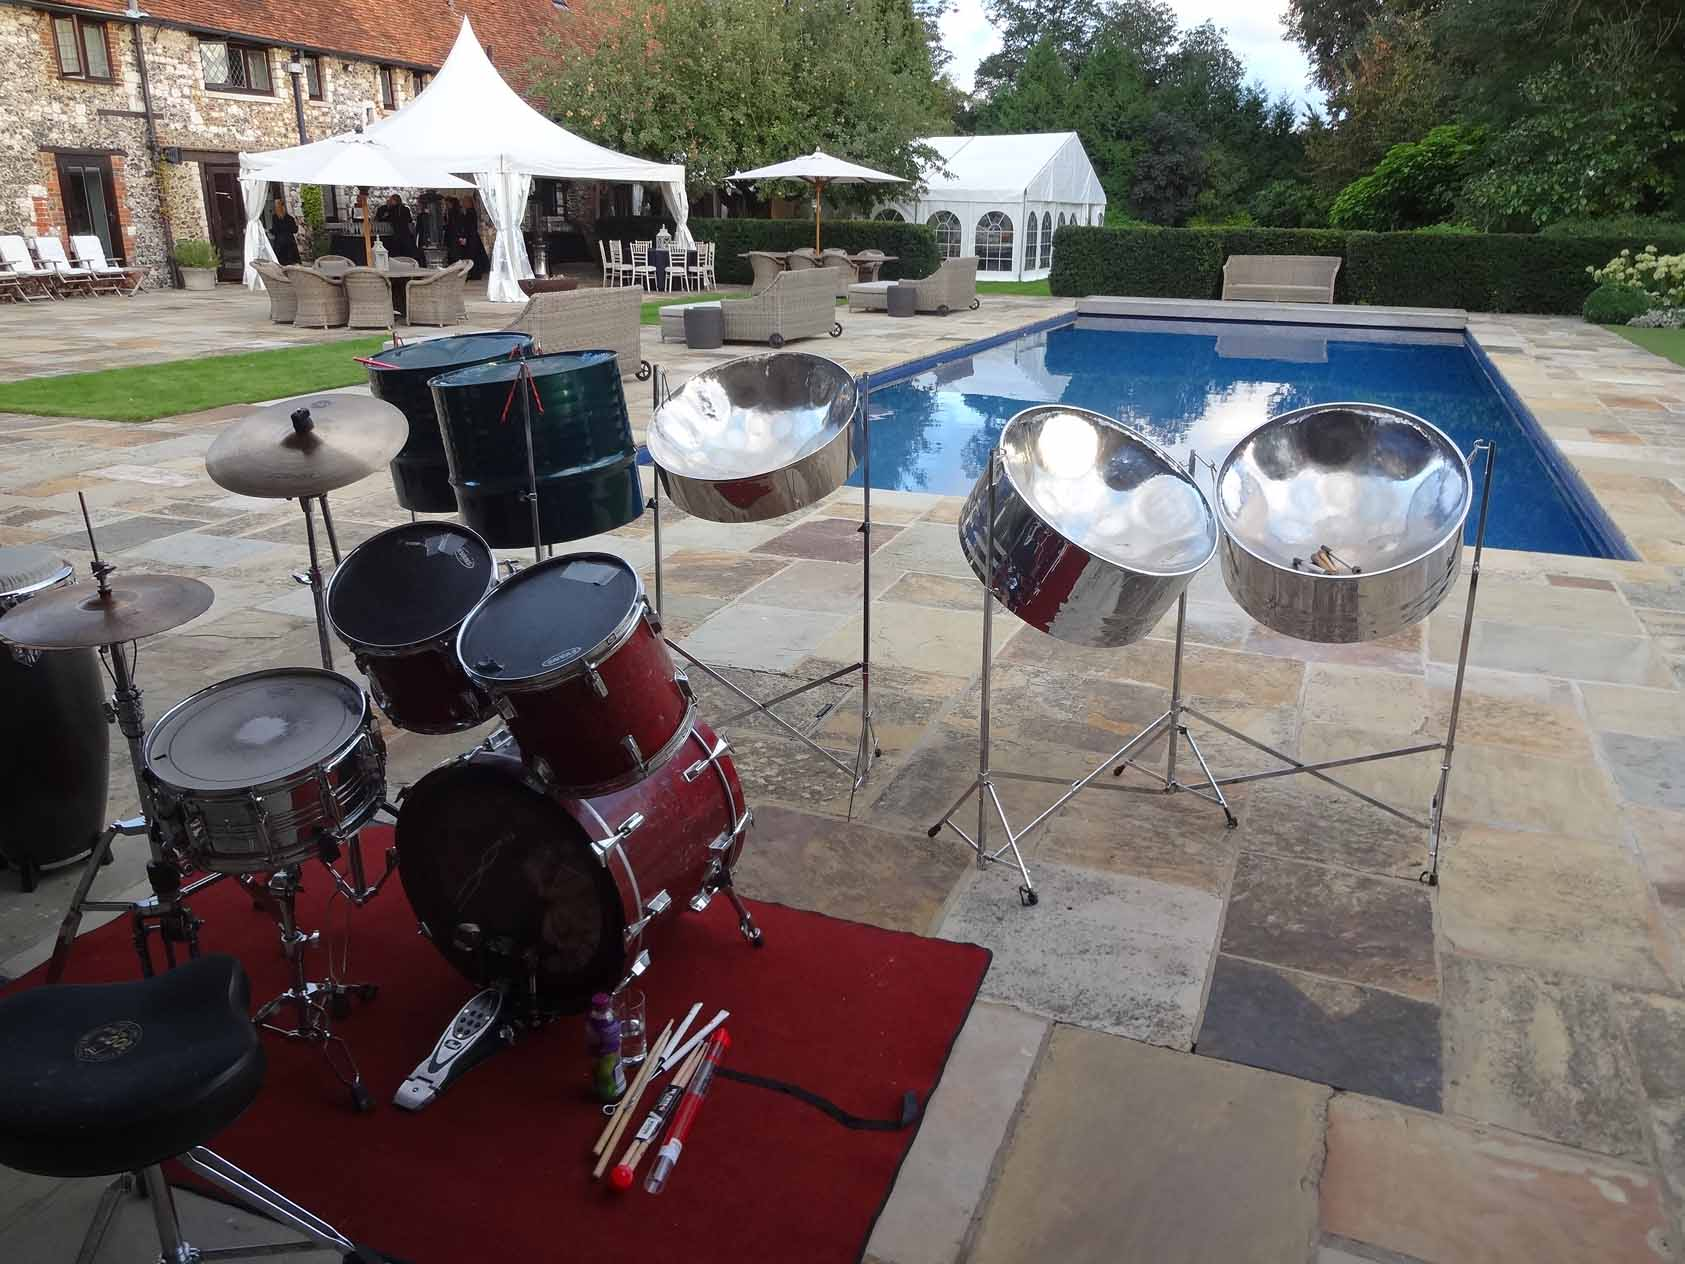 Steel bands hire Surrey, live band for party, live band hire London, musicians for small party, bands for hire Kensington,